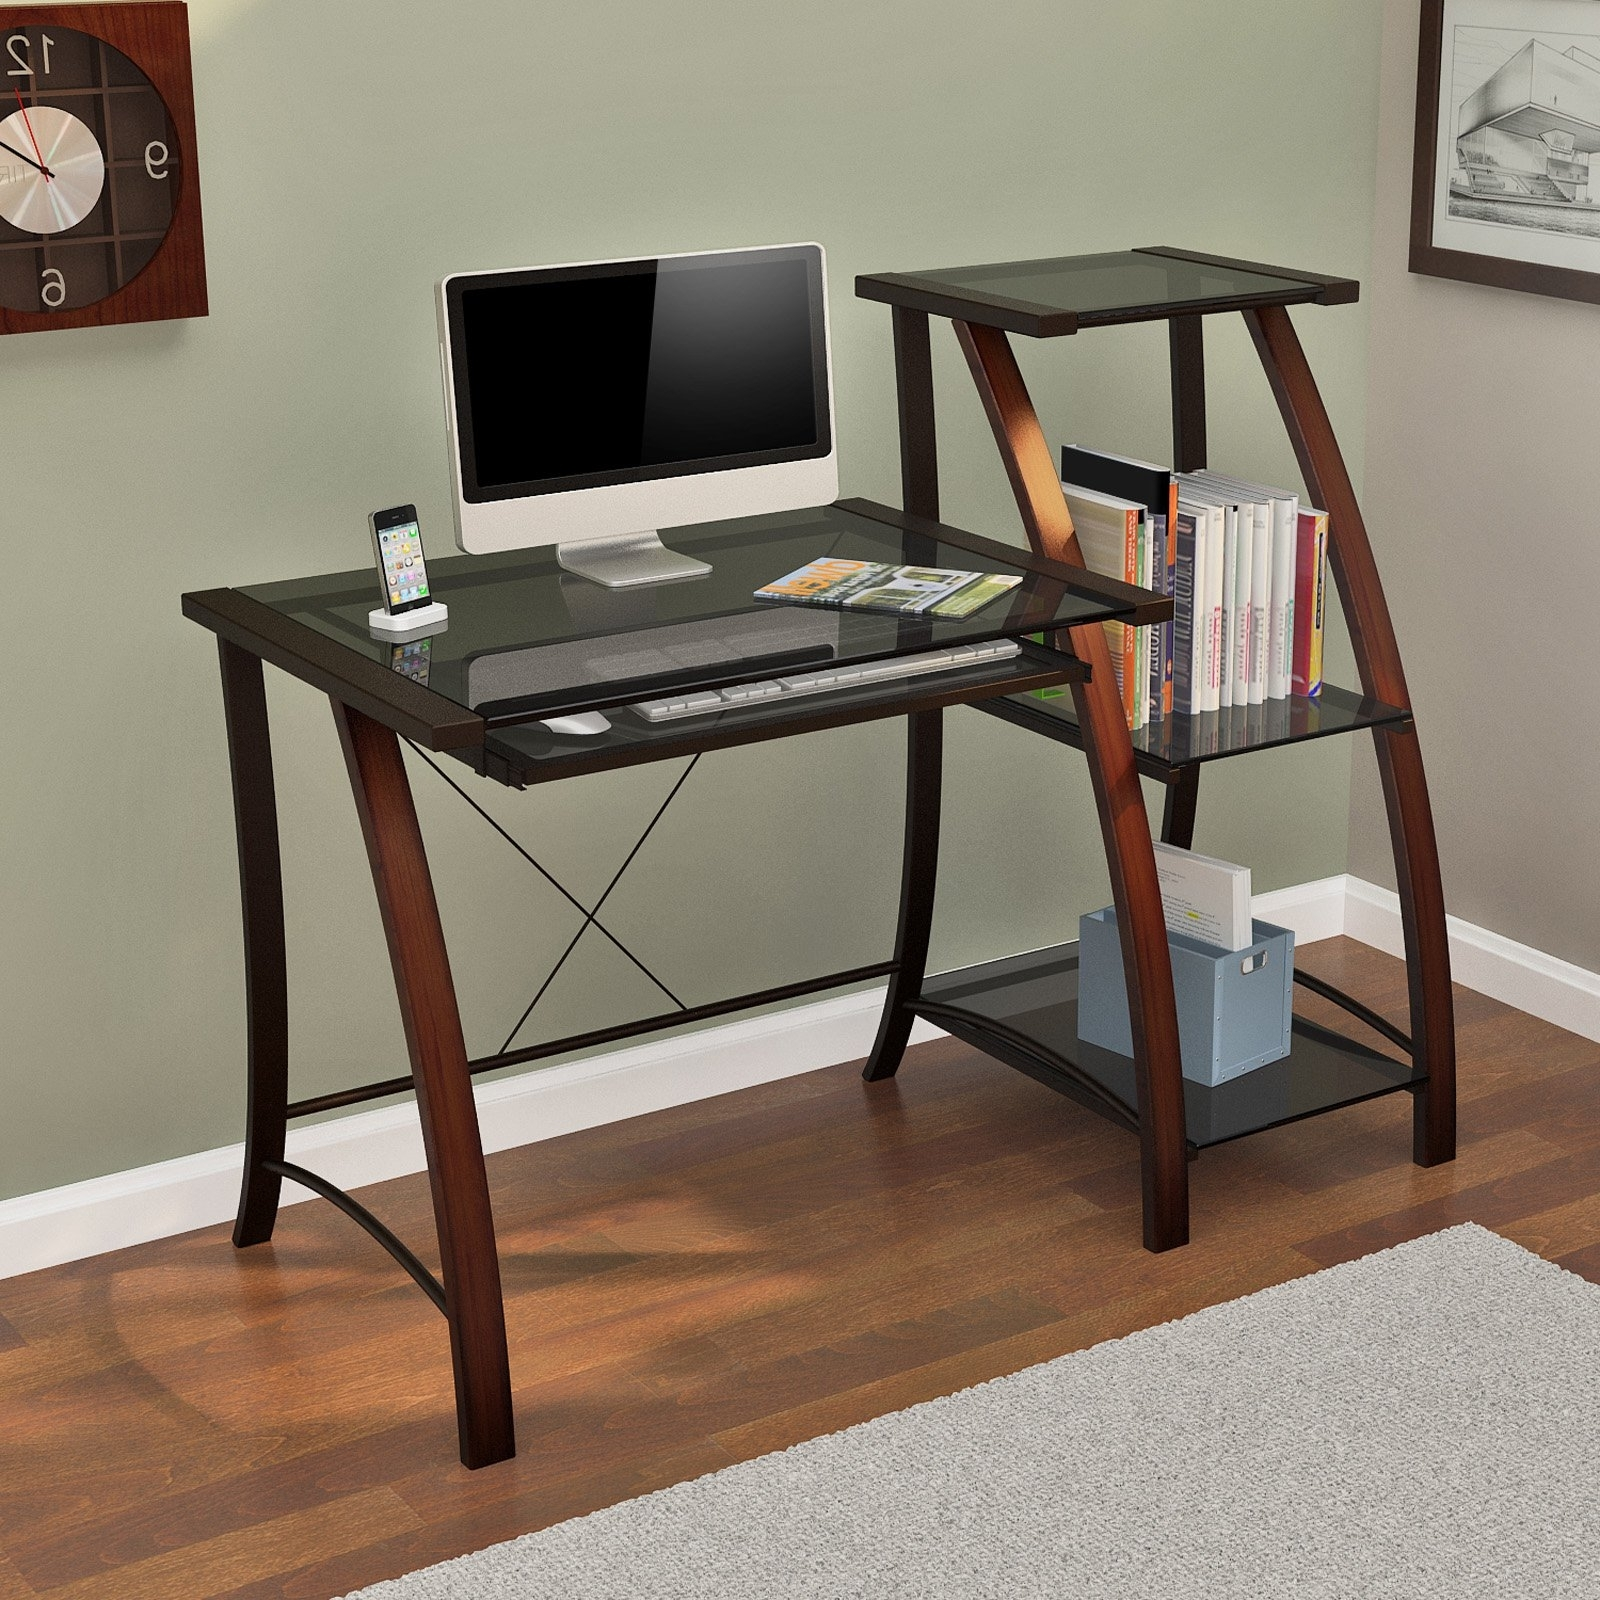 Z Line Triana Desk And Bookcase – Cherry – Walmart Throughout Most Recently Released Z Line Computer Desks (View 5 of 20)